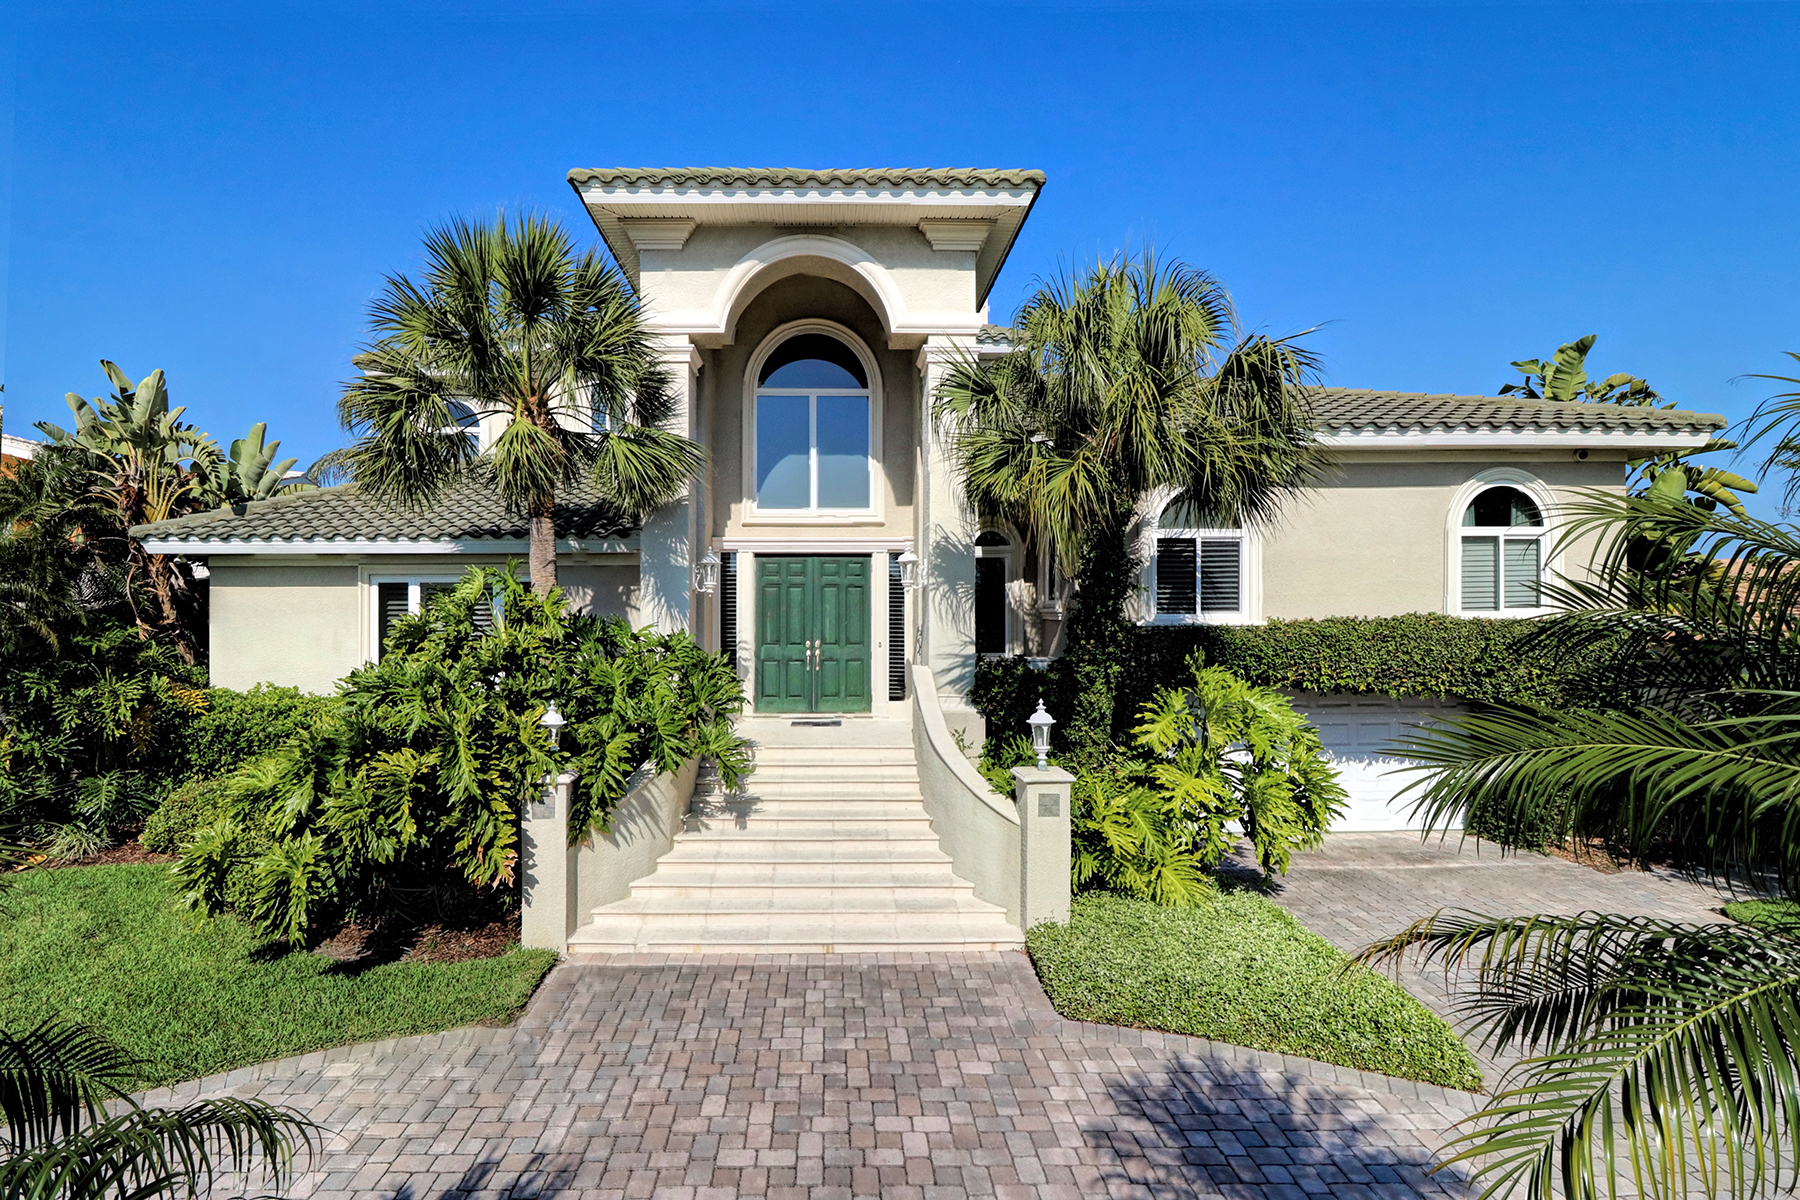 Maison unifamiliale pour l Vente à CLEARWATER 56 Windward Clearwater Beach, Florida, 33767 États-Unis